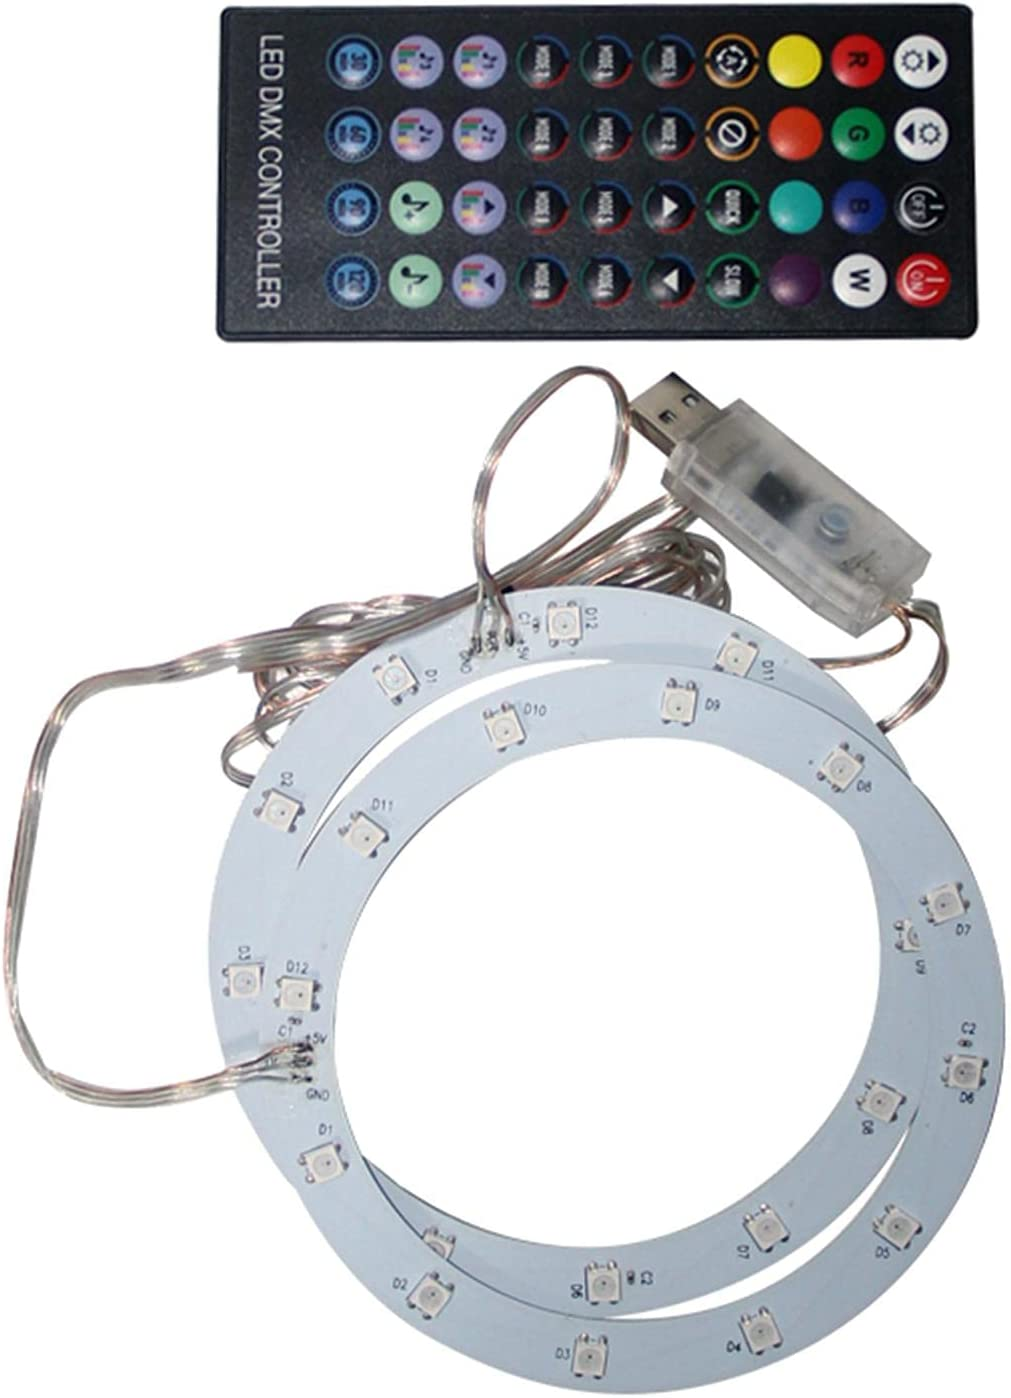 Xiaoyaoyou RGB LED Light 4 Max 57% OFF years warranty Strip for 358 Lig Colors 8 Console PS5